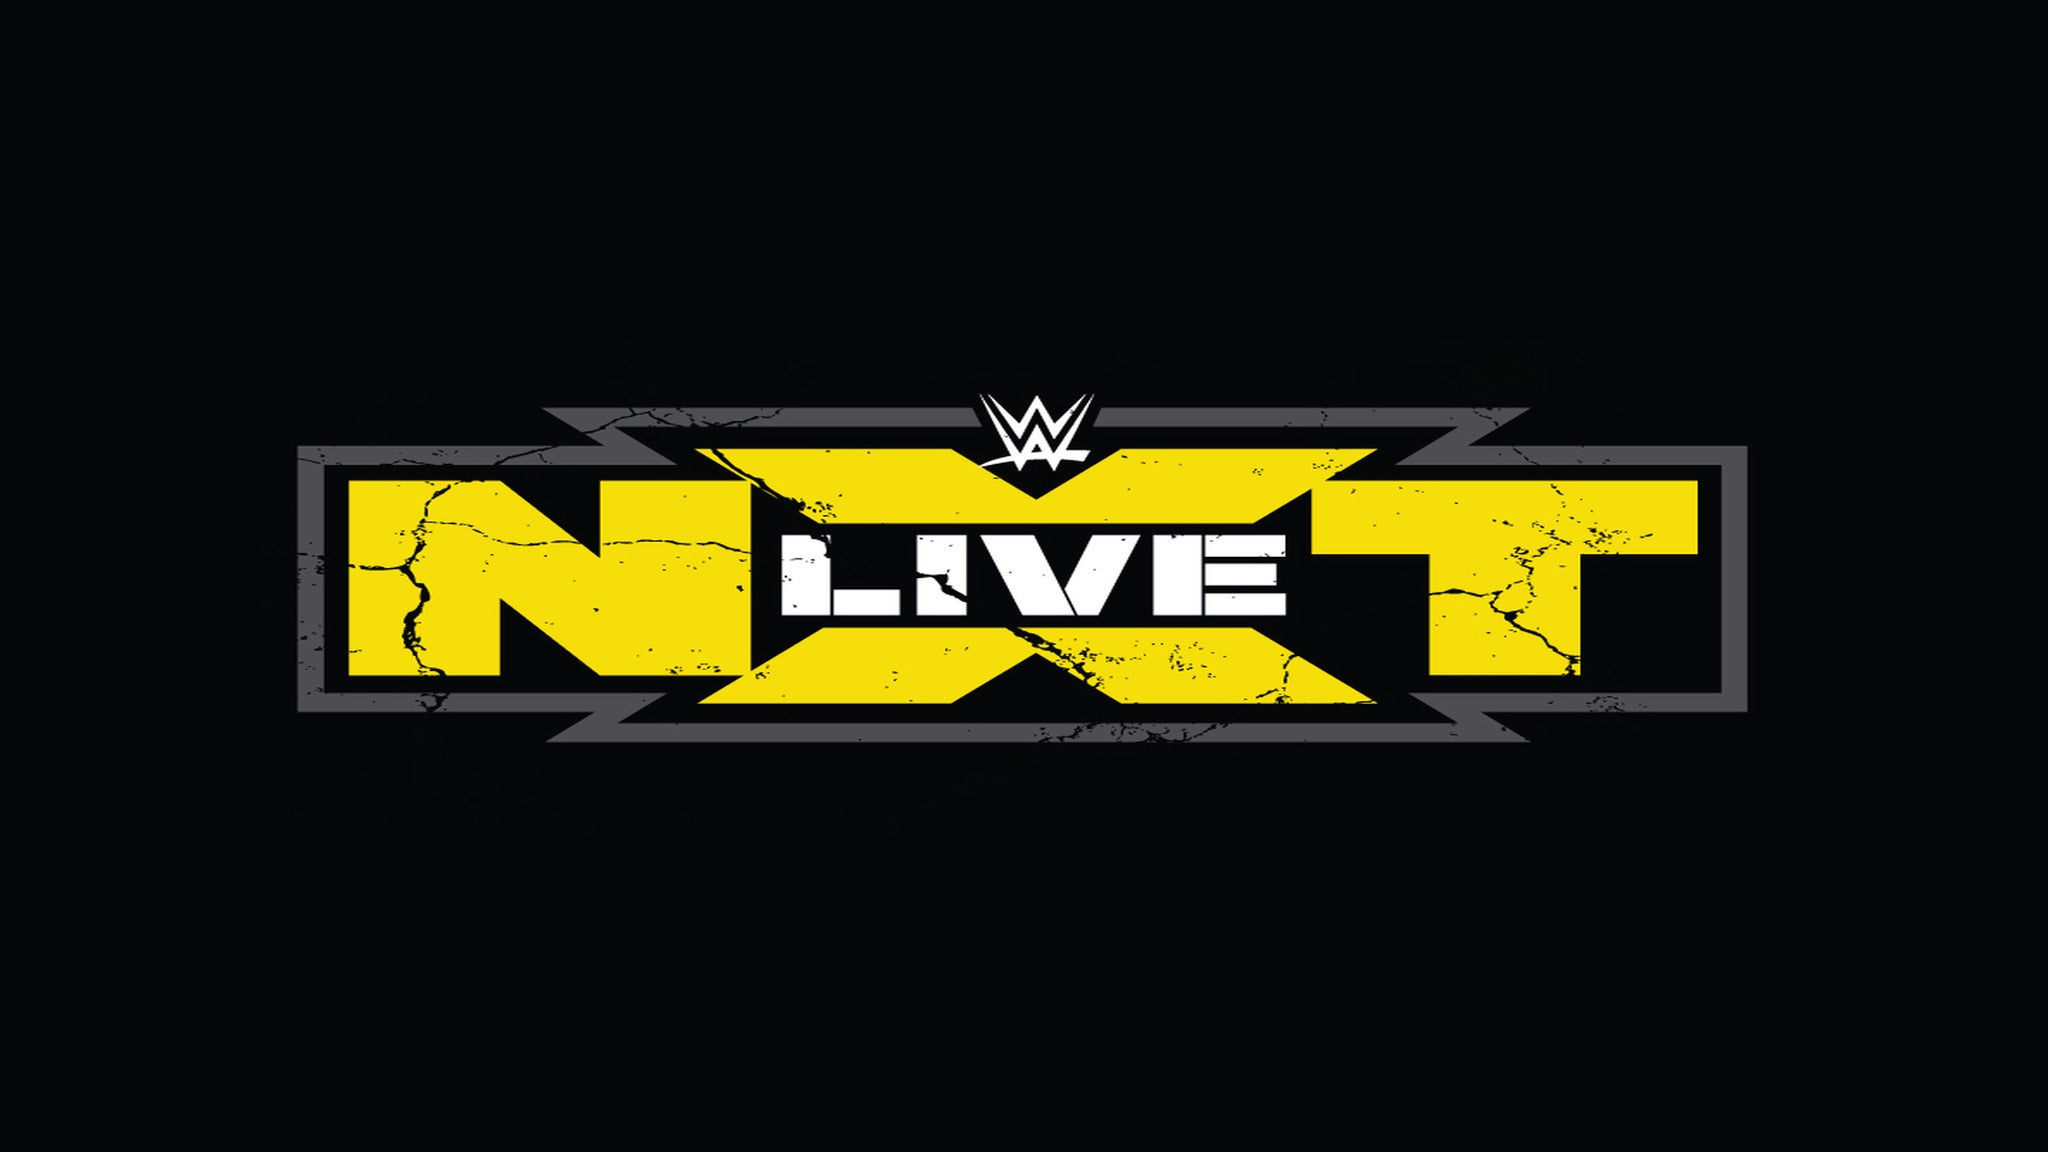 WWE Presents NXT Live! at Fieldhouse at Watsco Center